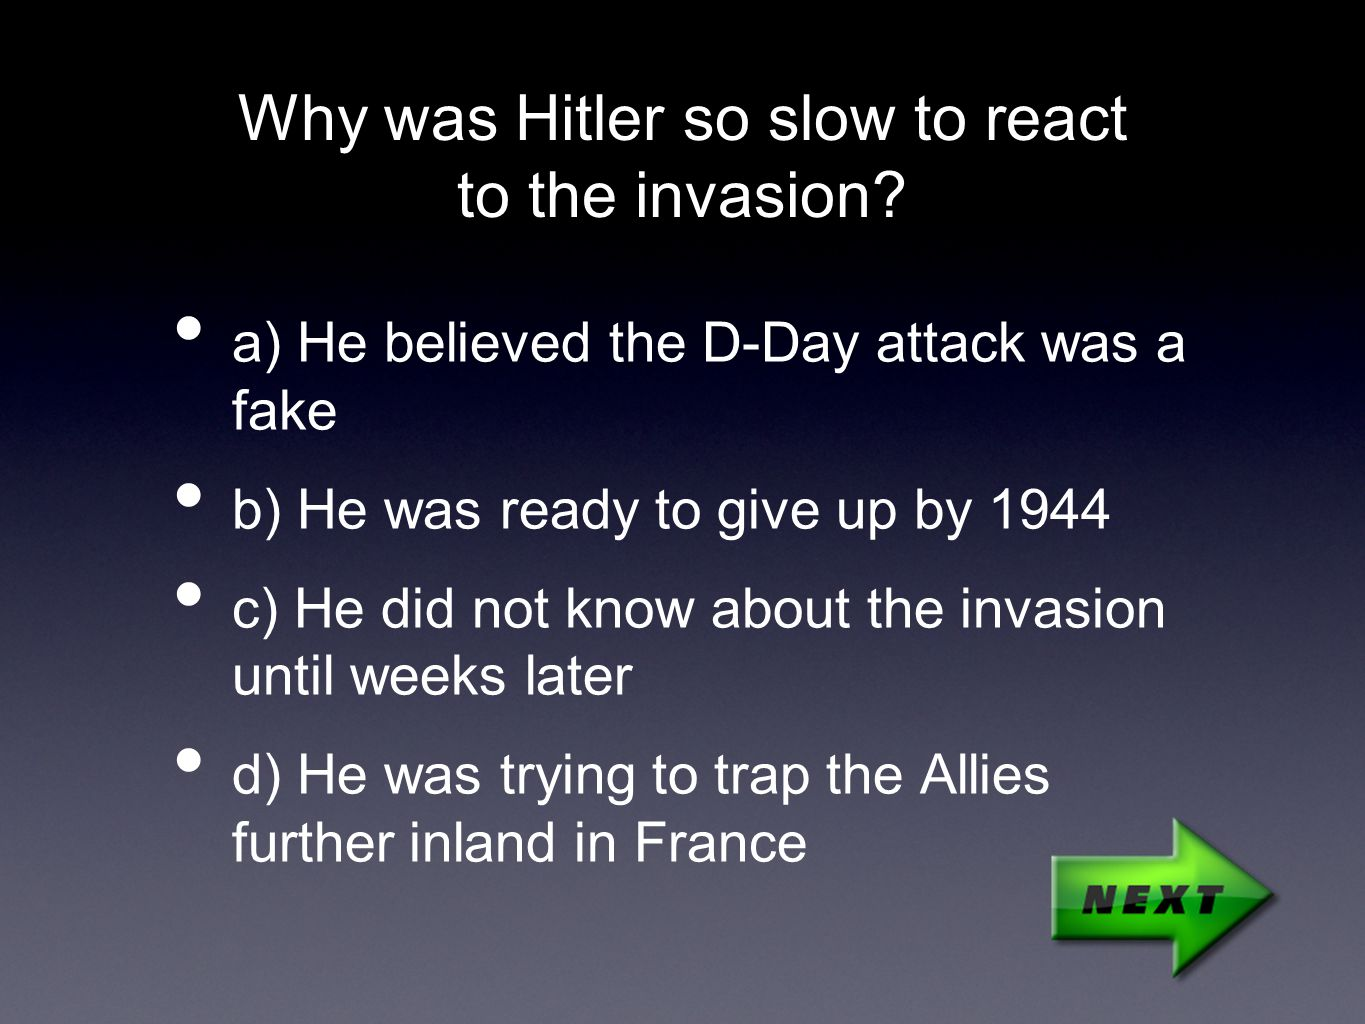 Why was Hitler so slow to react to the invasion? a) He believed the D-Day attack was a fake b) He was ready to give up by 1944 c) He did not know abou